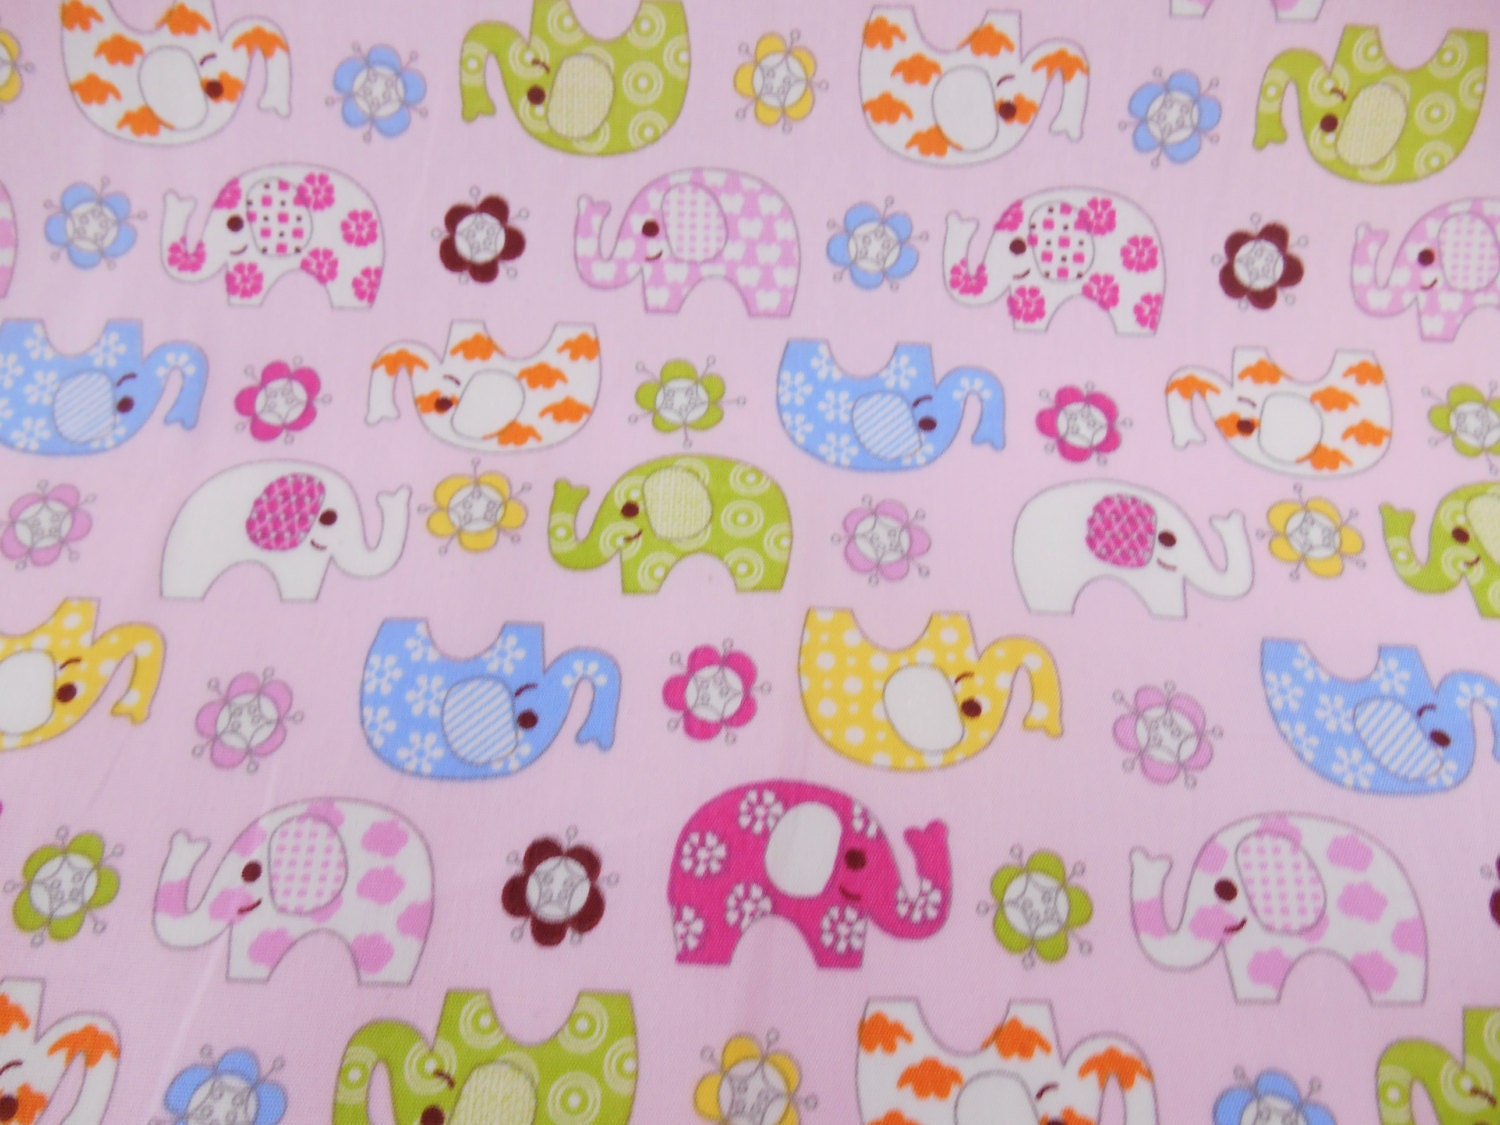 Rose and hubble cotton fabric elephants pink nursery abric for Nursery cotton fabric